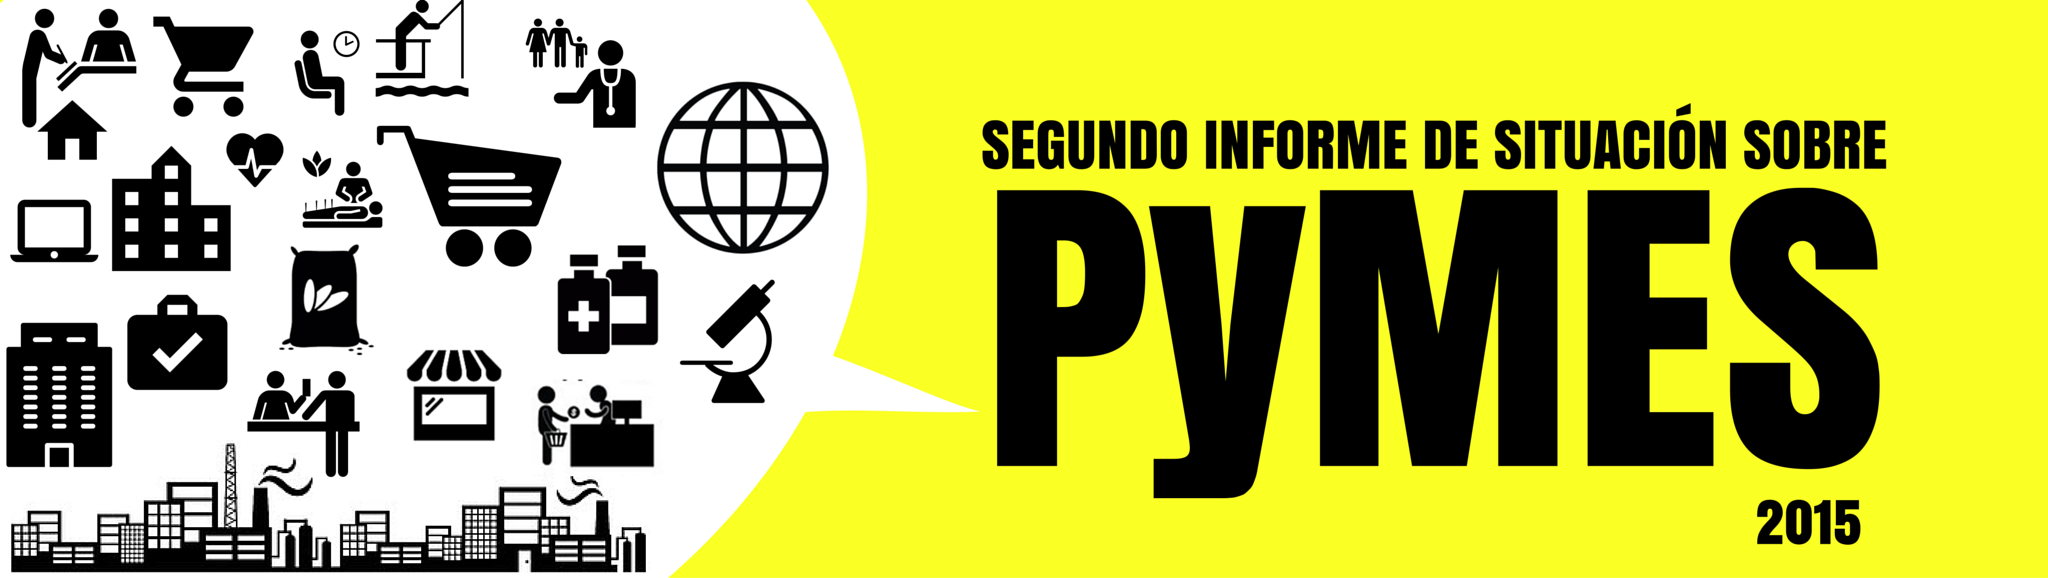 Banner Informe Pymes 4